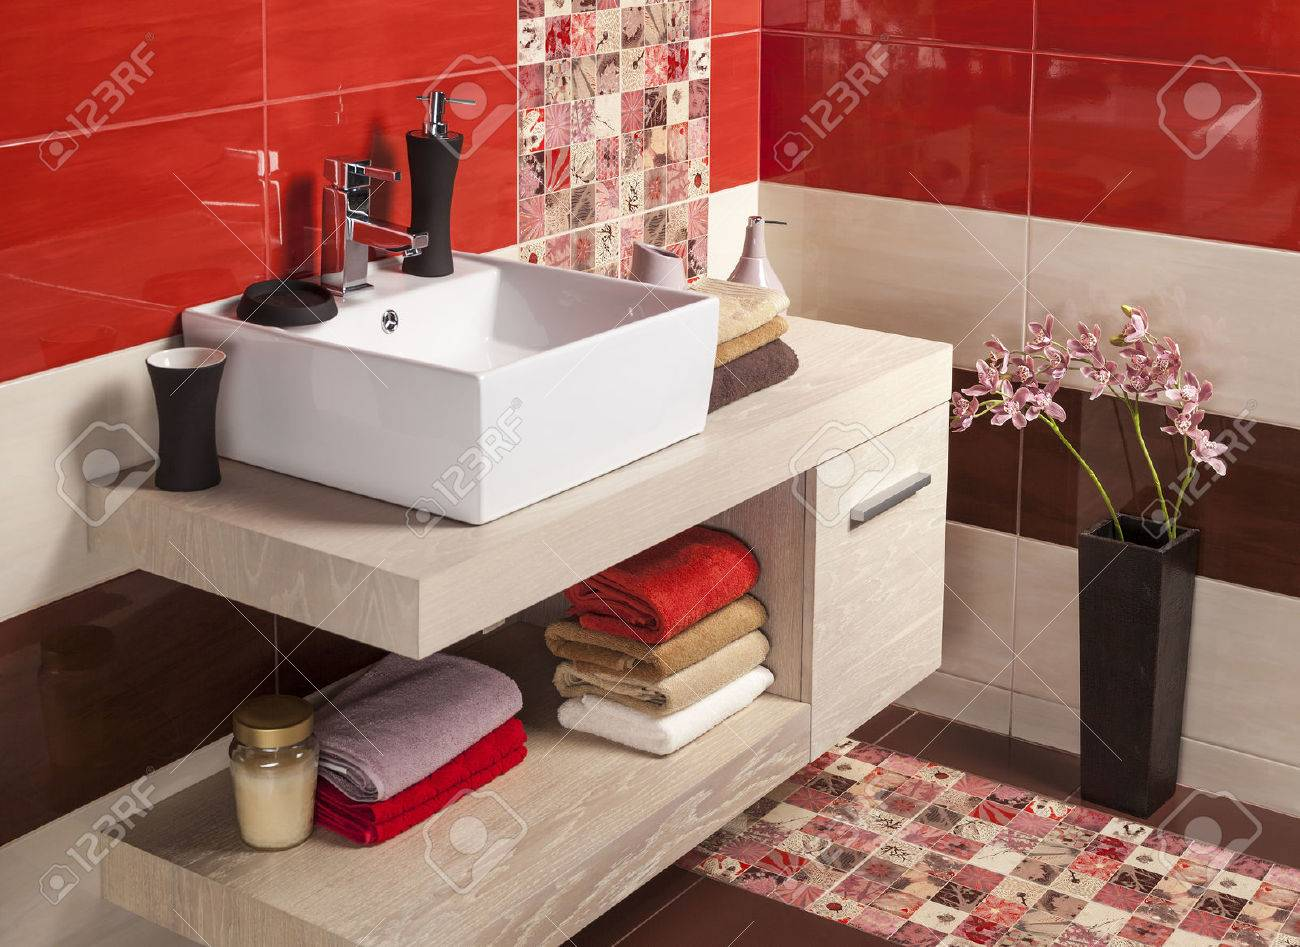 Interior of modern bathroom with sink and toilet - 42118573